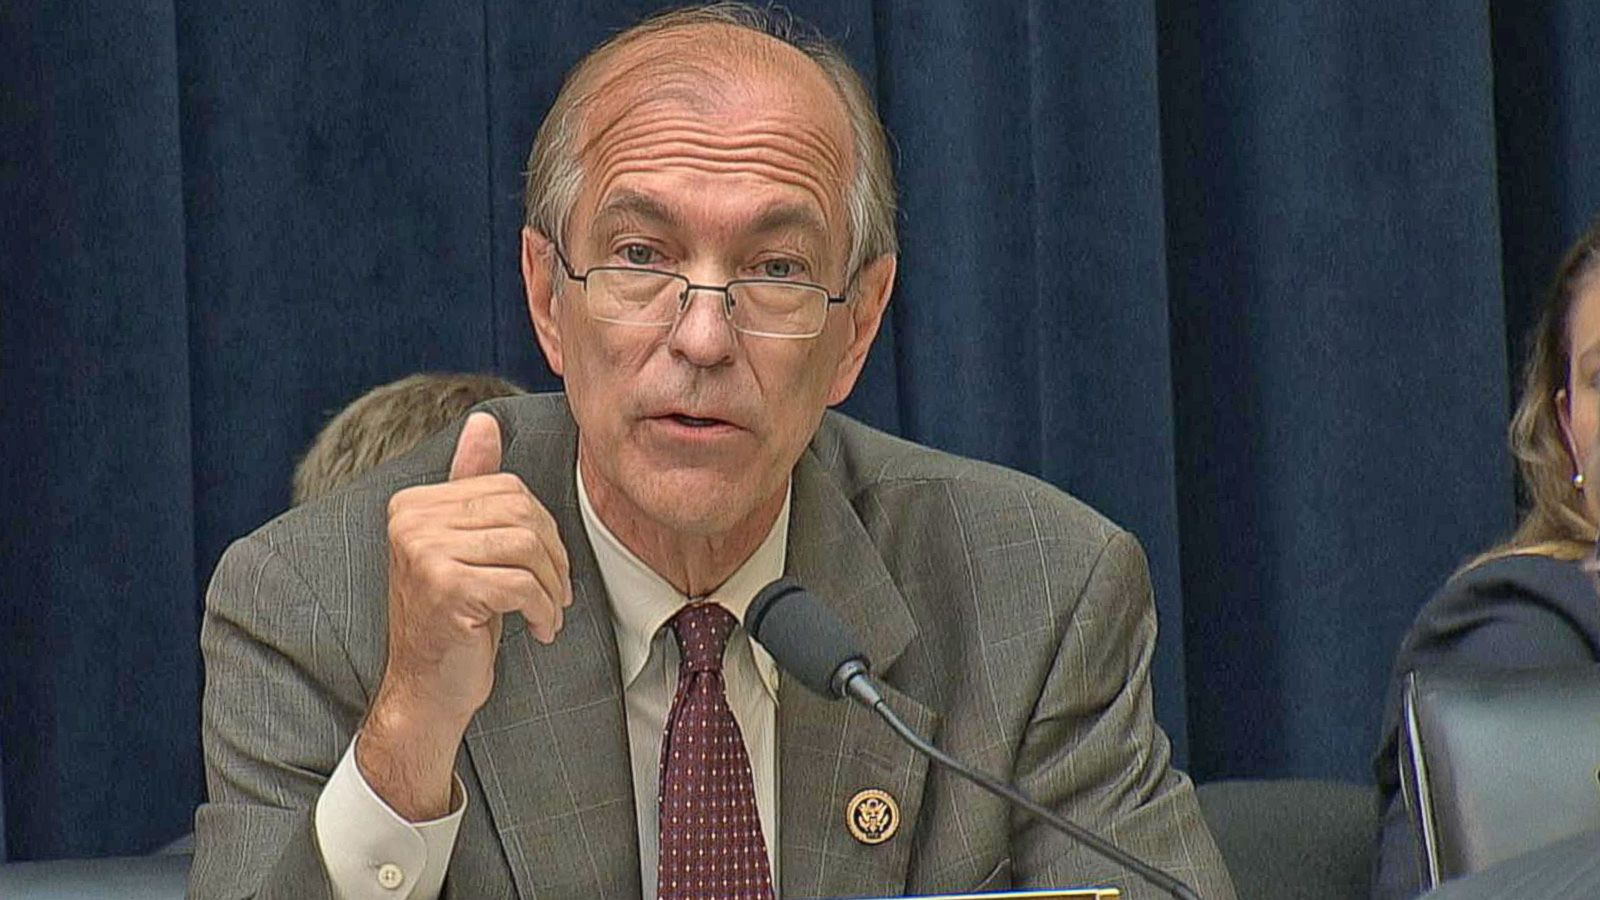 VIDEO: Congressman Asks Fed Chairwoman About Potential Political Bias Towards Clinton